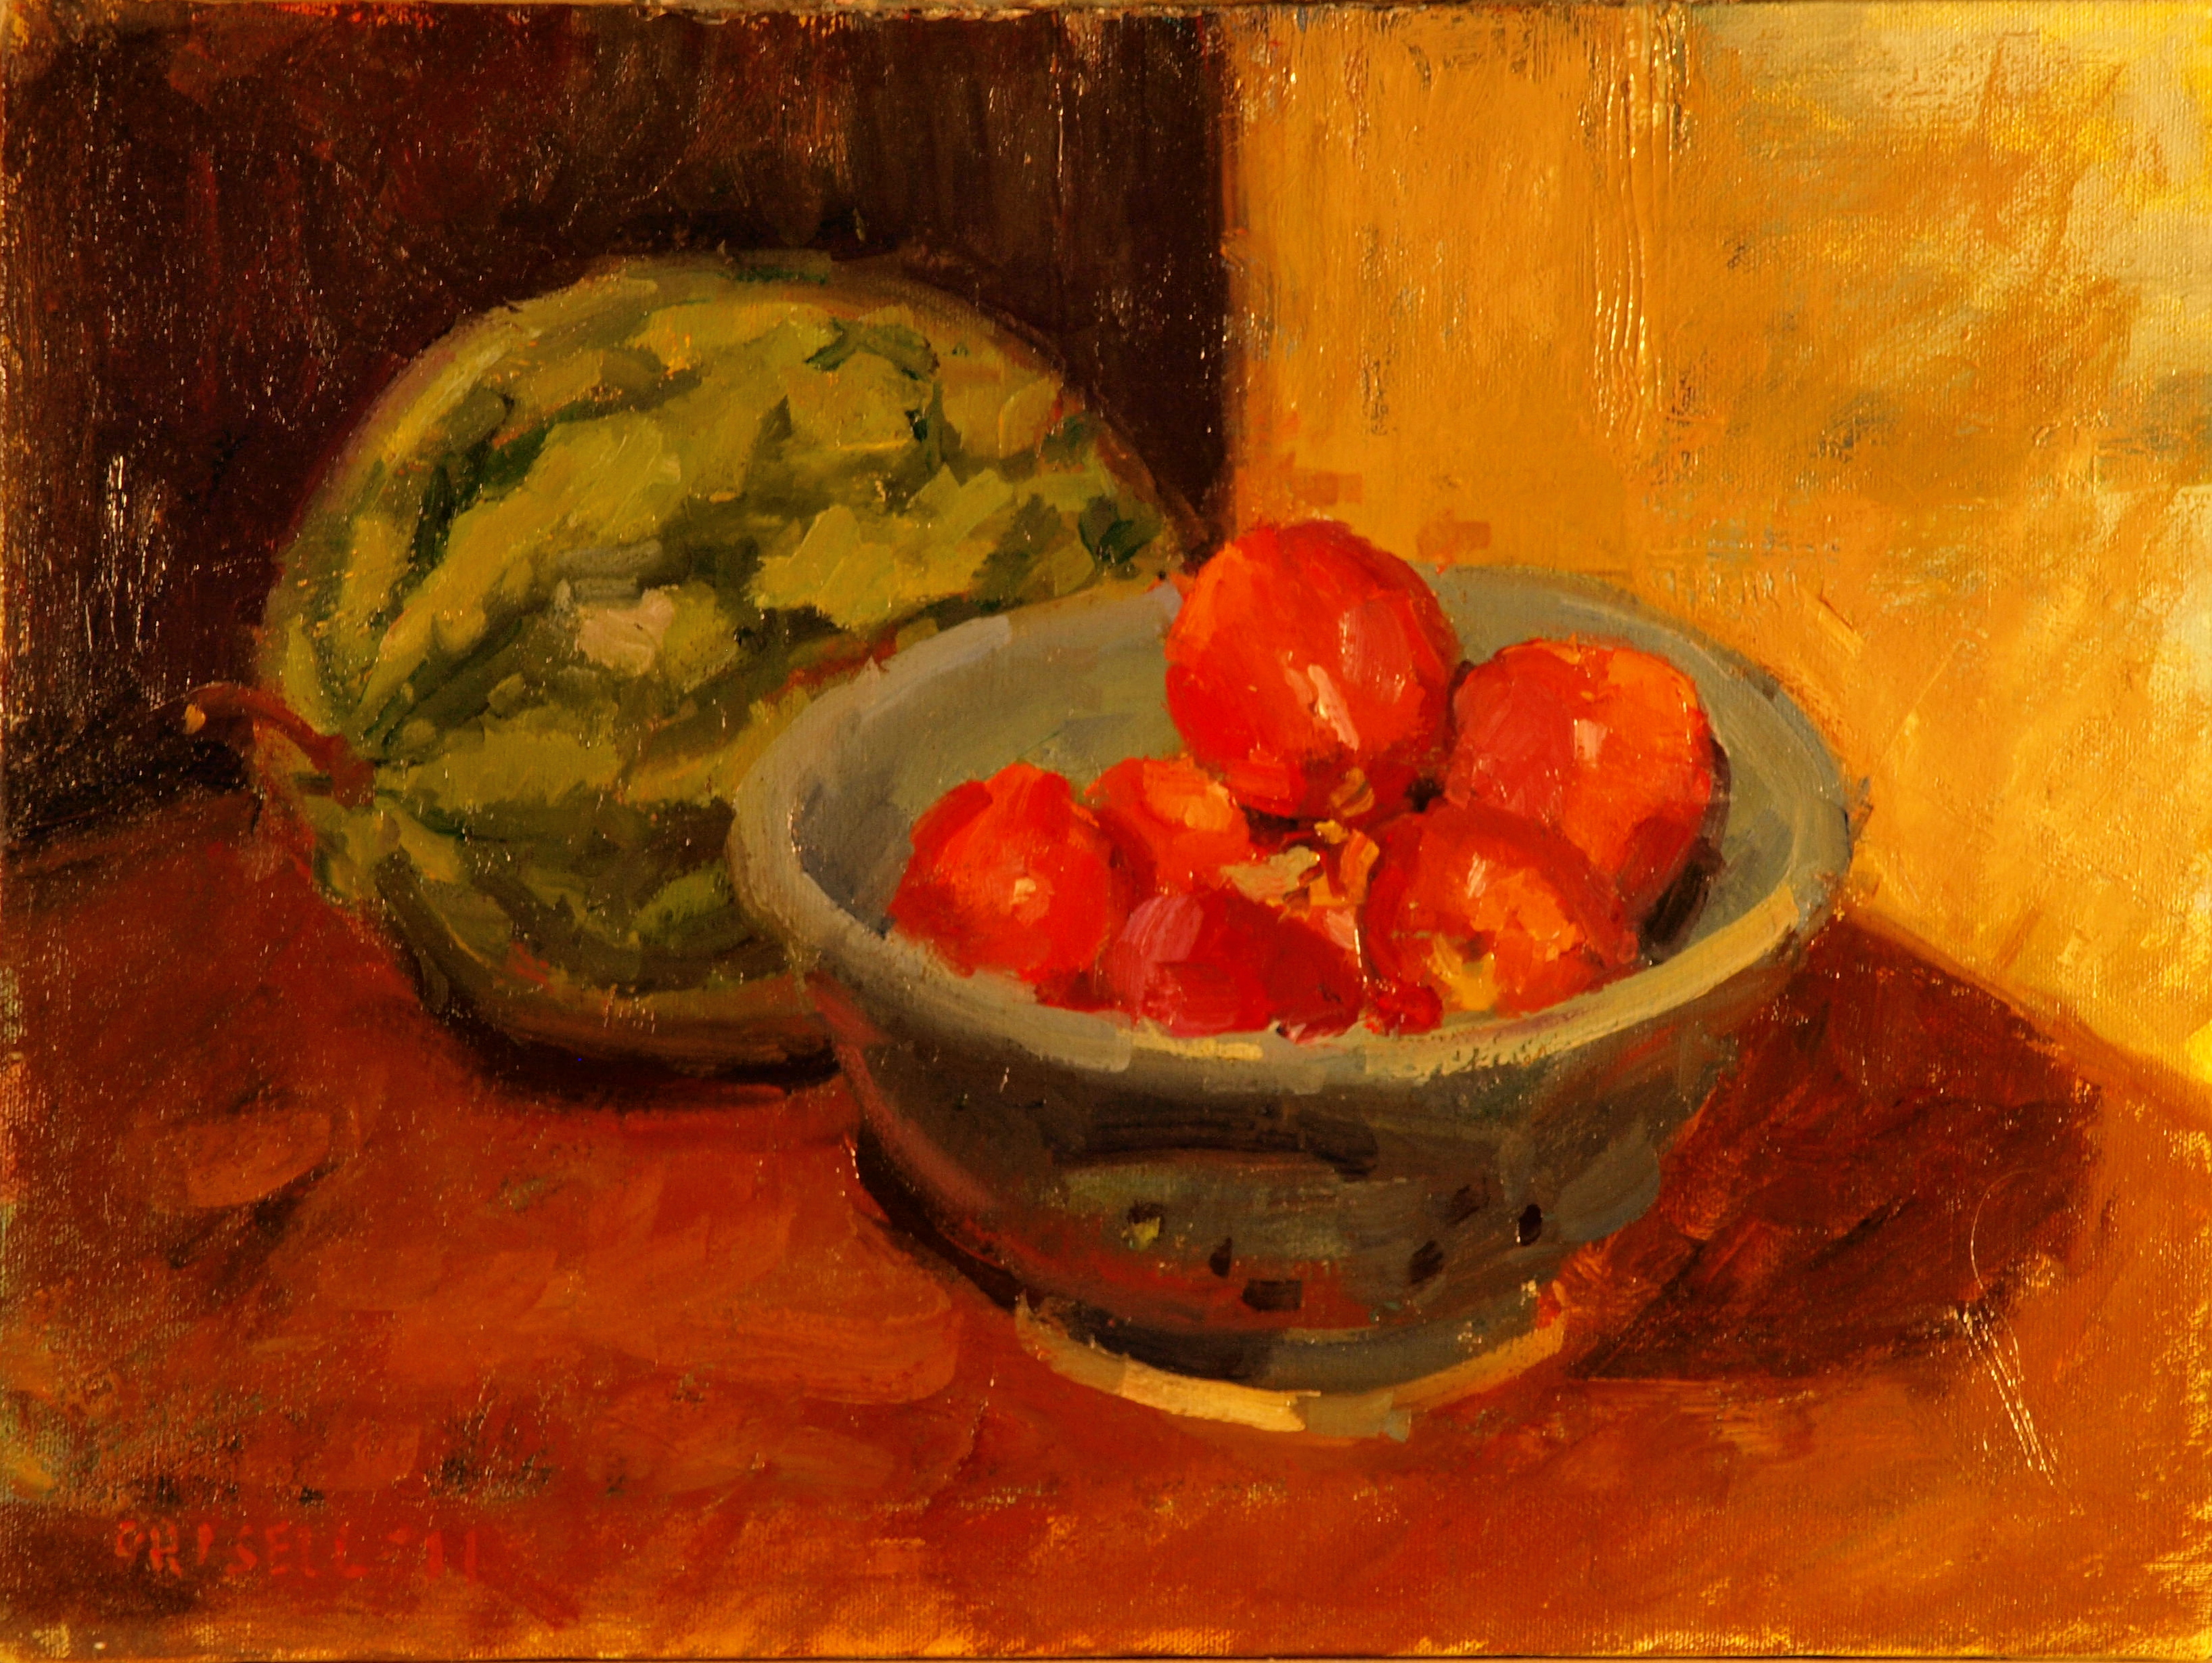 September Still Life, Oil on Canvas, 12 x 16 Inches, by Susan Grisell, $275